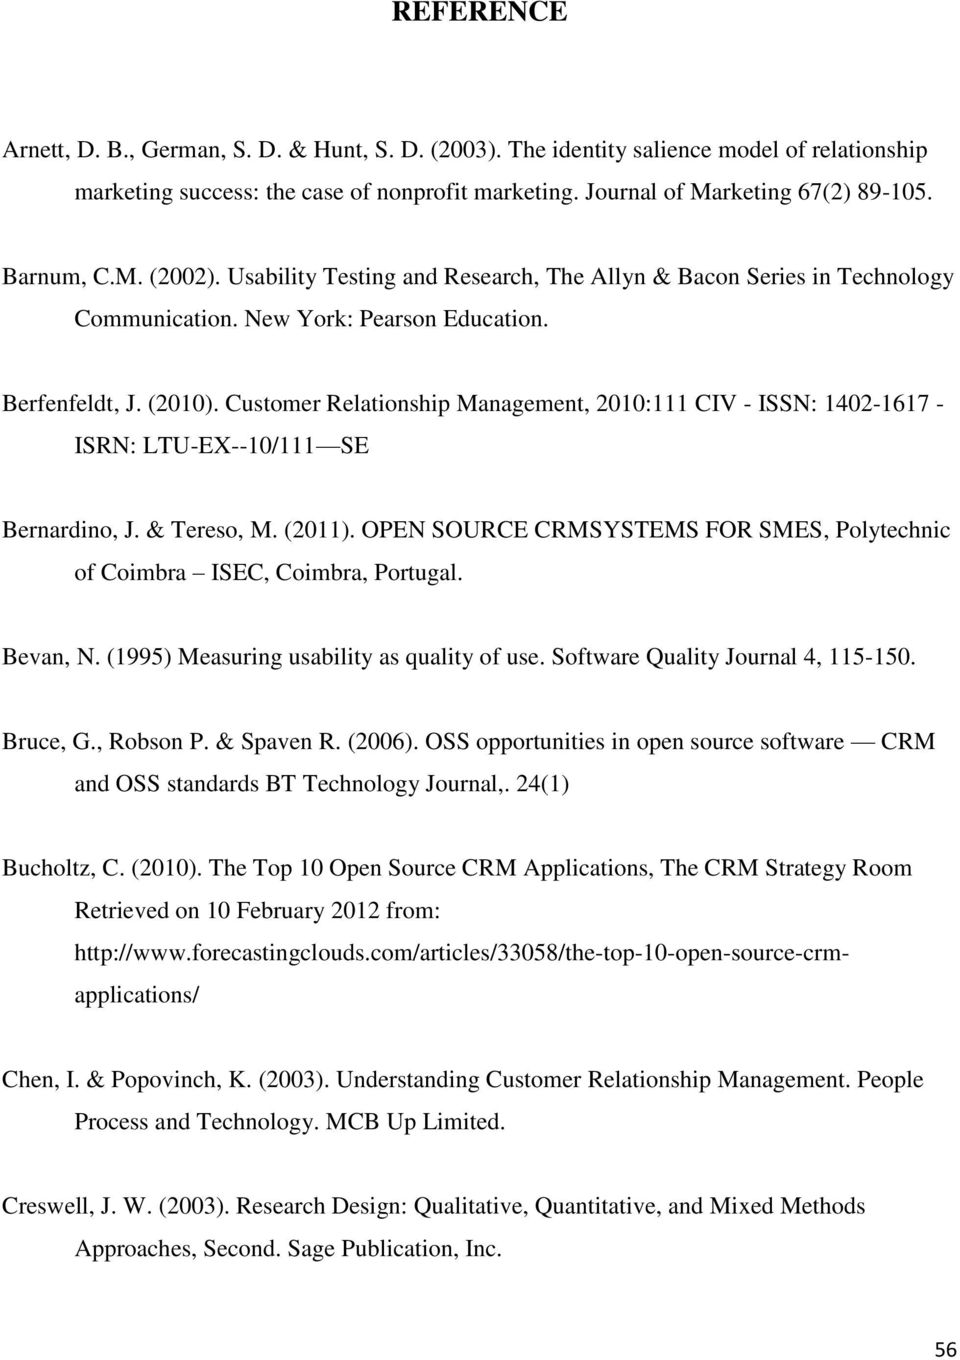 Customer Relationship Management, 2010:111 CIV - ISSN: 1402-1617 - ISRN: LTU-EX--10/111 SE Bernardino, J. & Tereso, M. (2011).